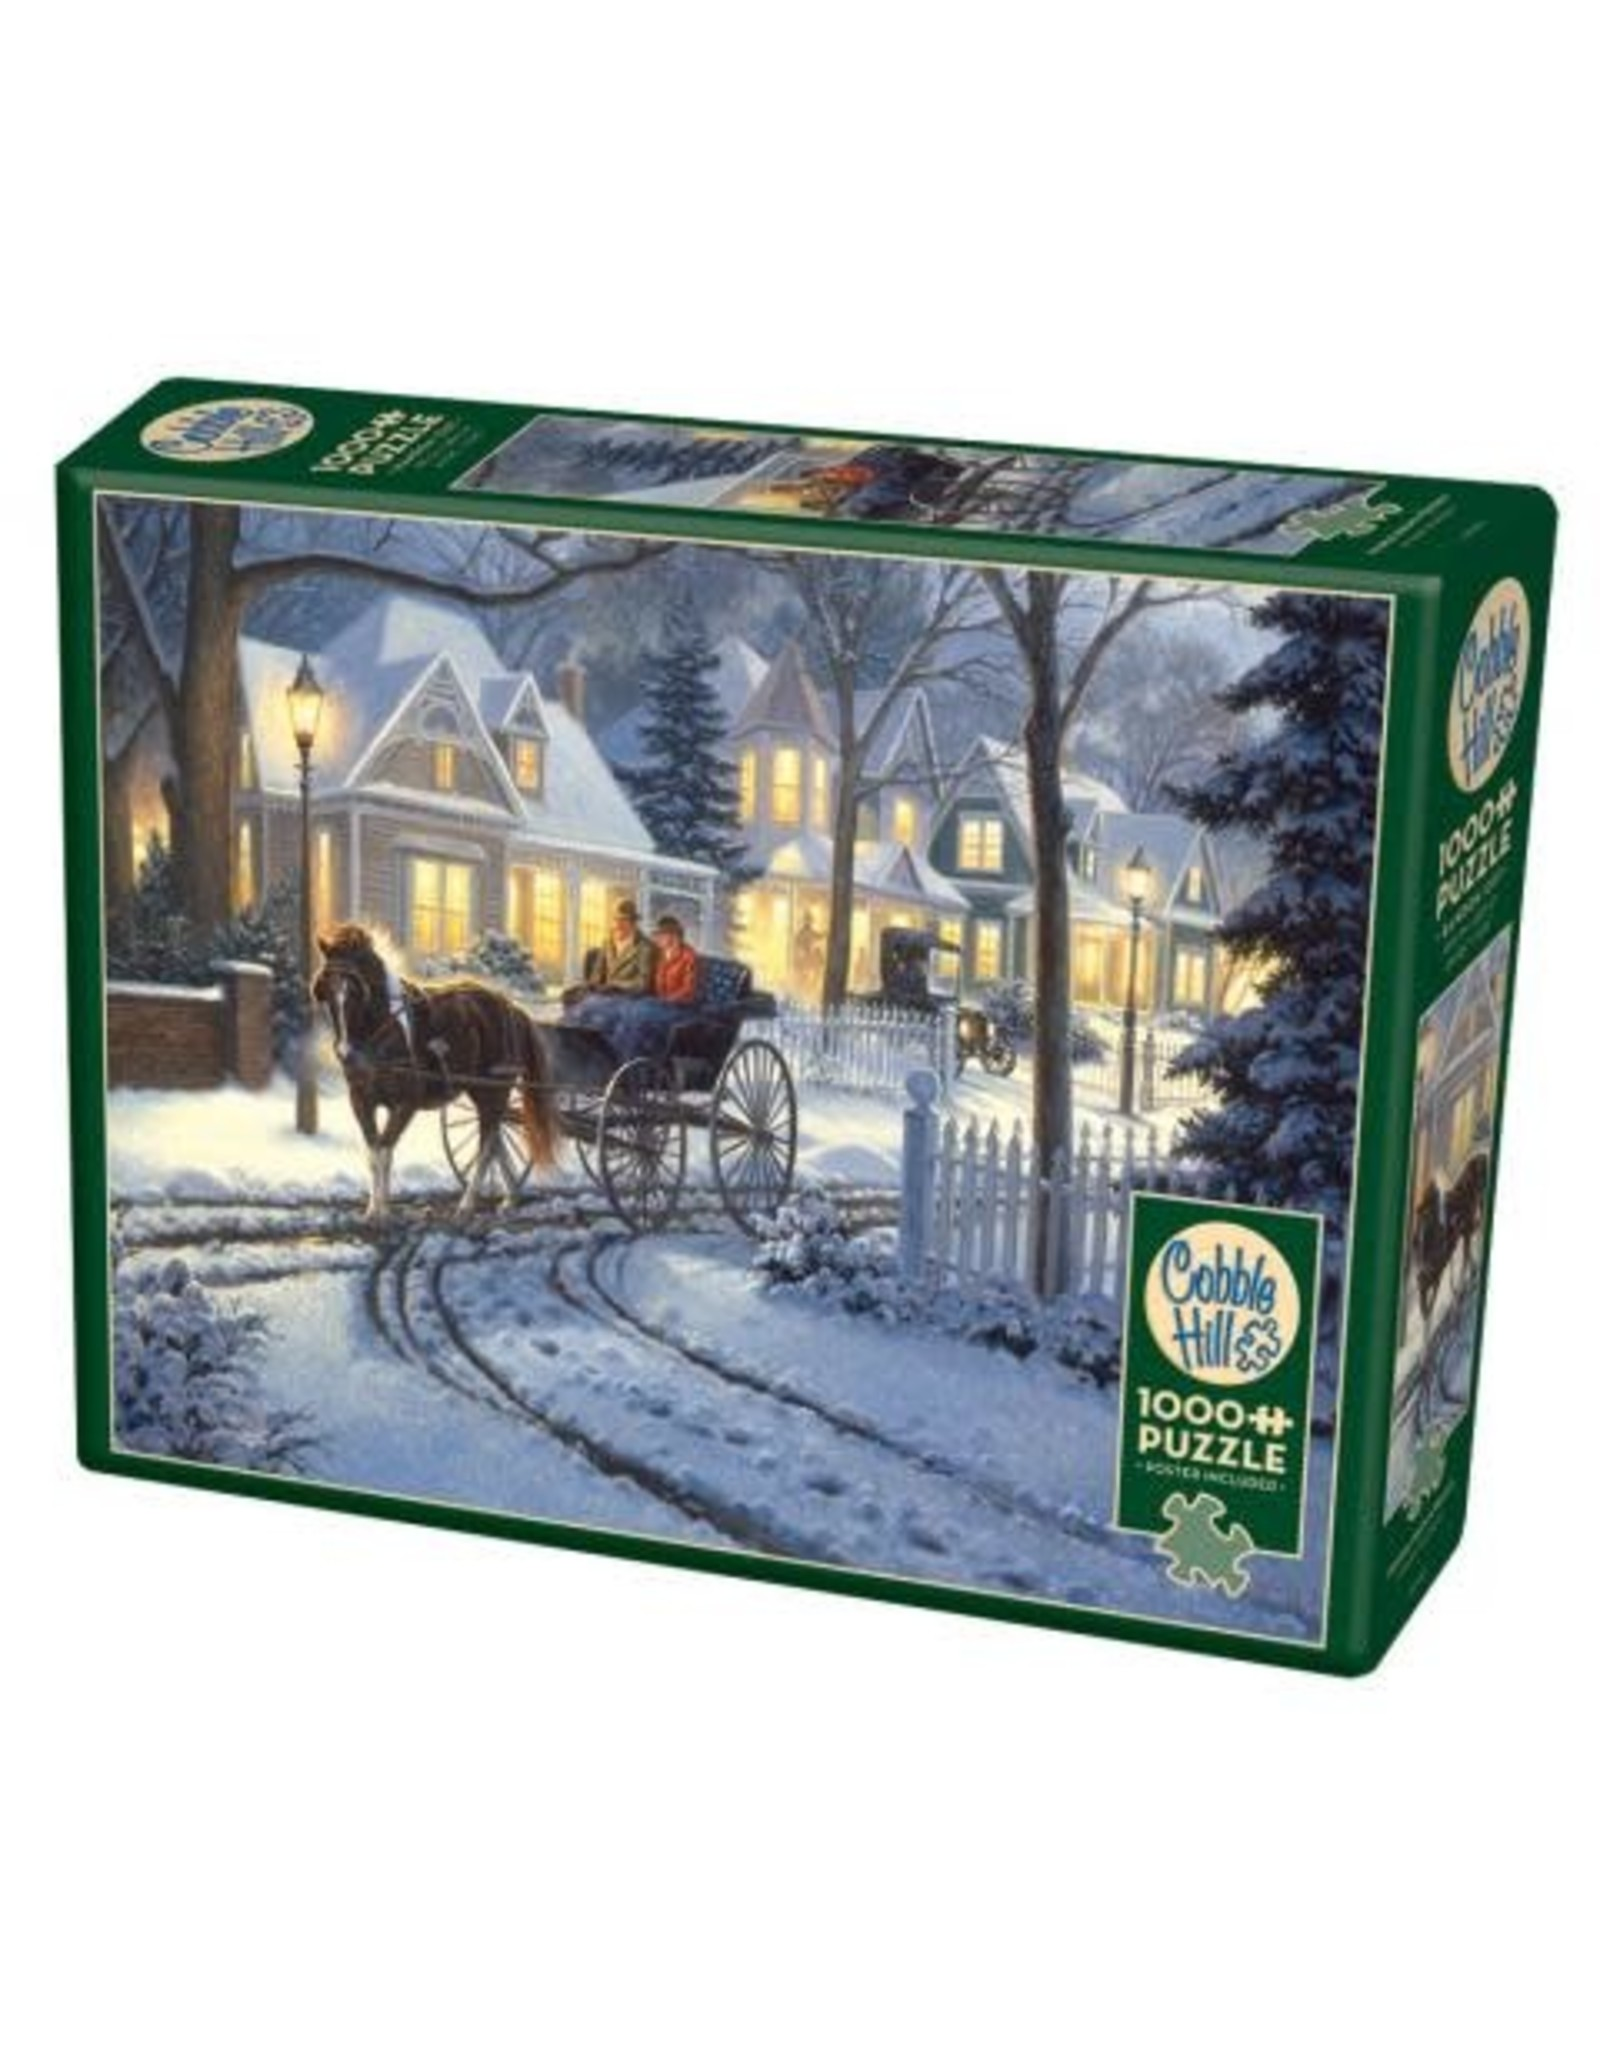 Cobble Hill Puzzles OM80128 Cobblehill Puzzle 1000pc Horse Drawn Buggy